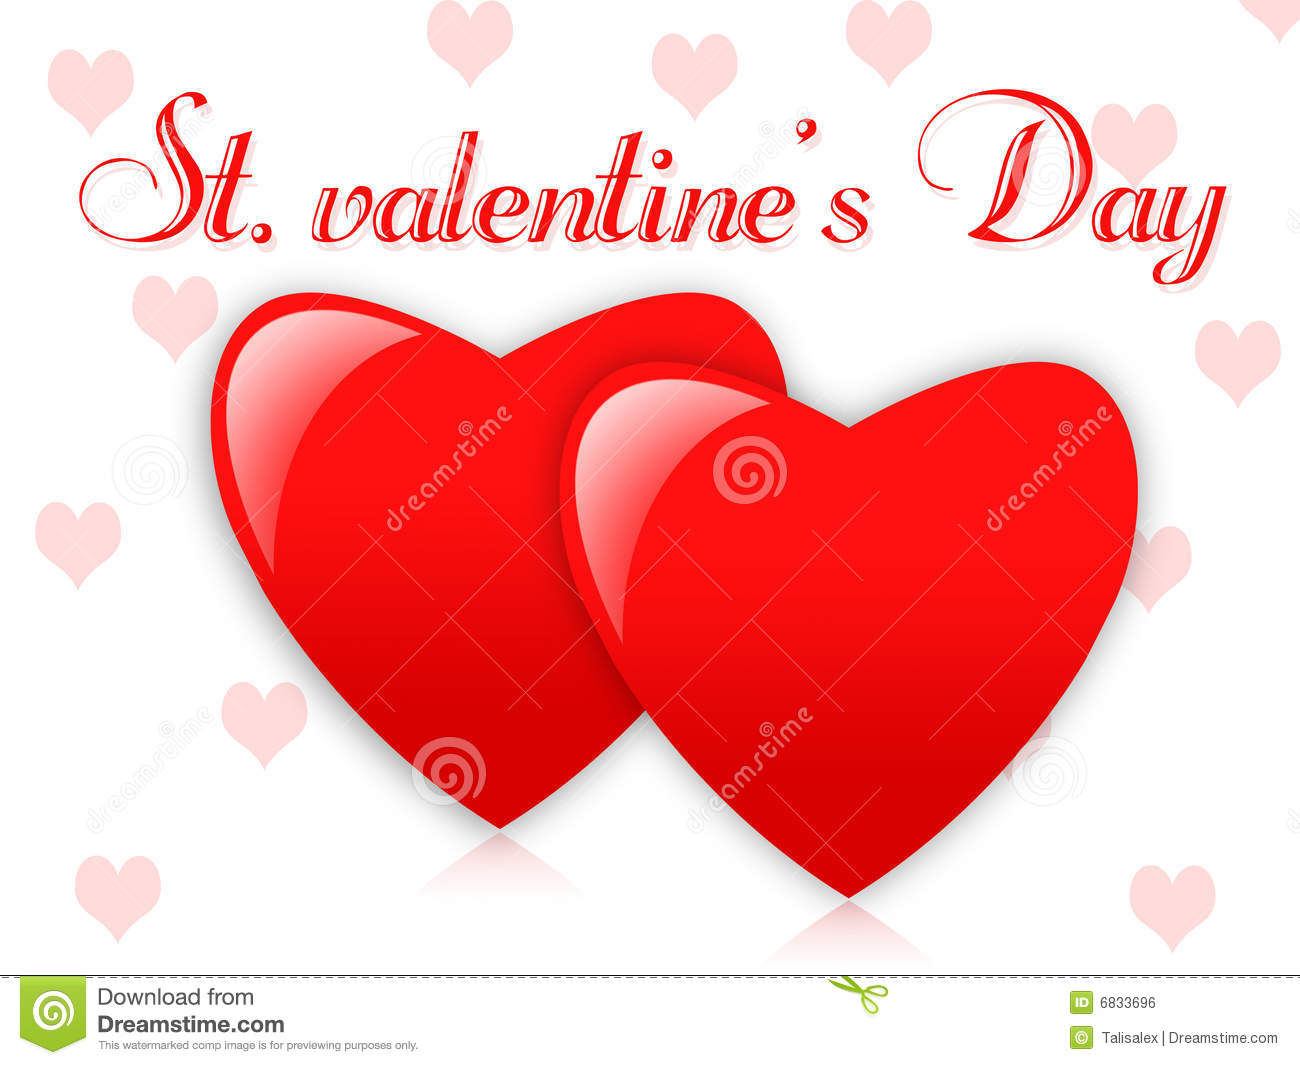 St  Valentines Day Royalty Free Stock Image   Image  6833696